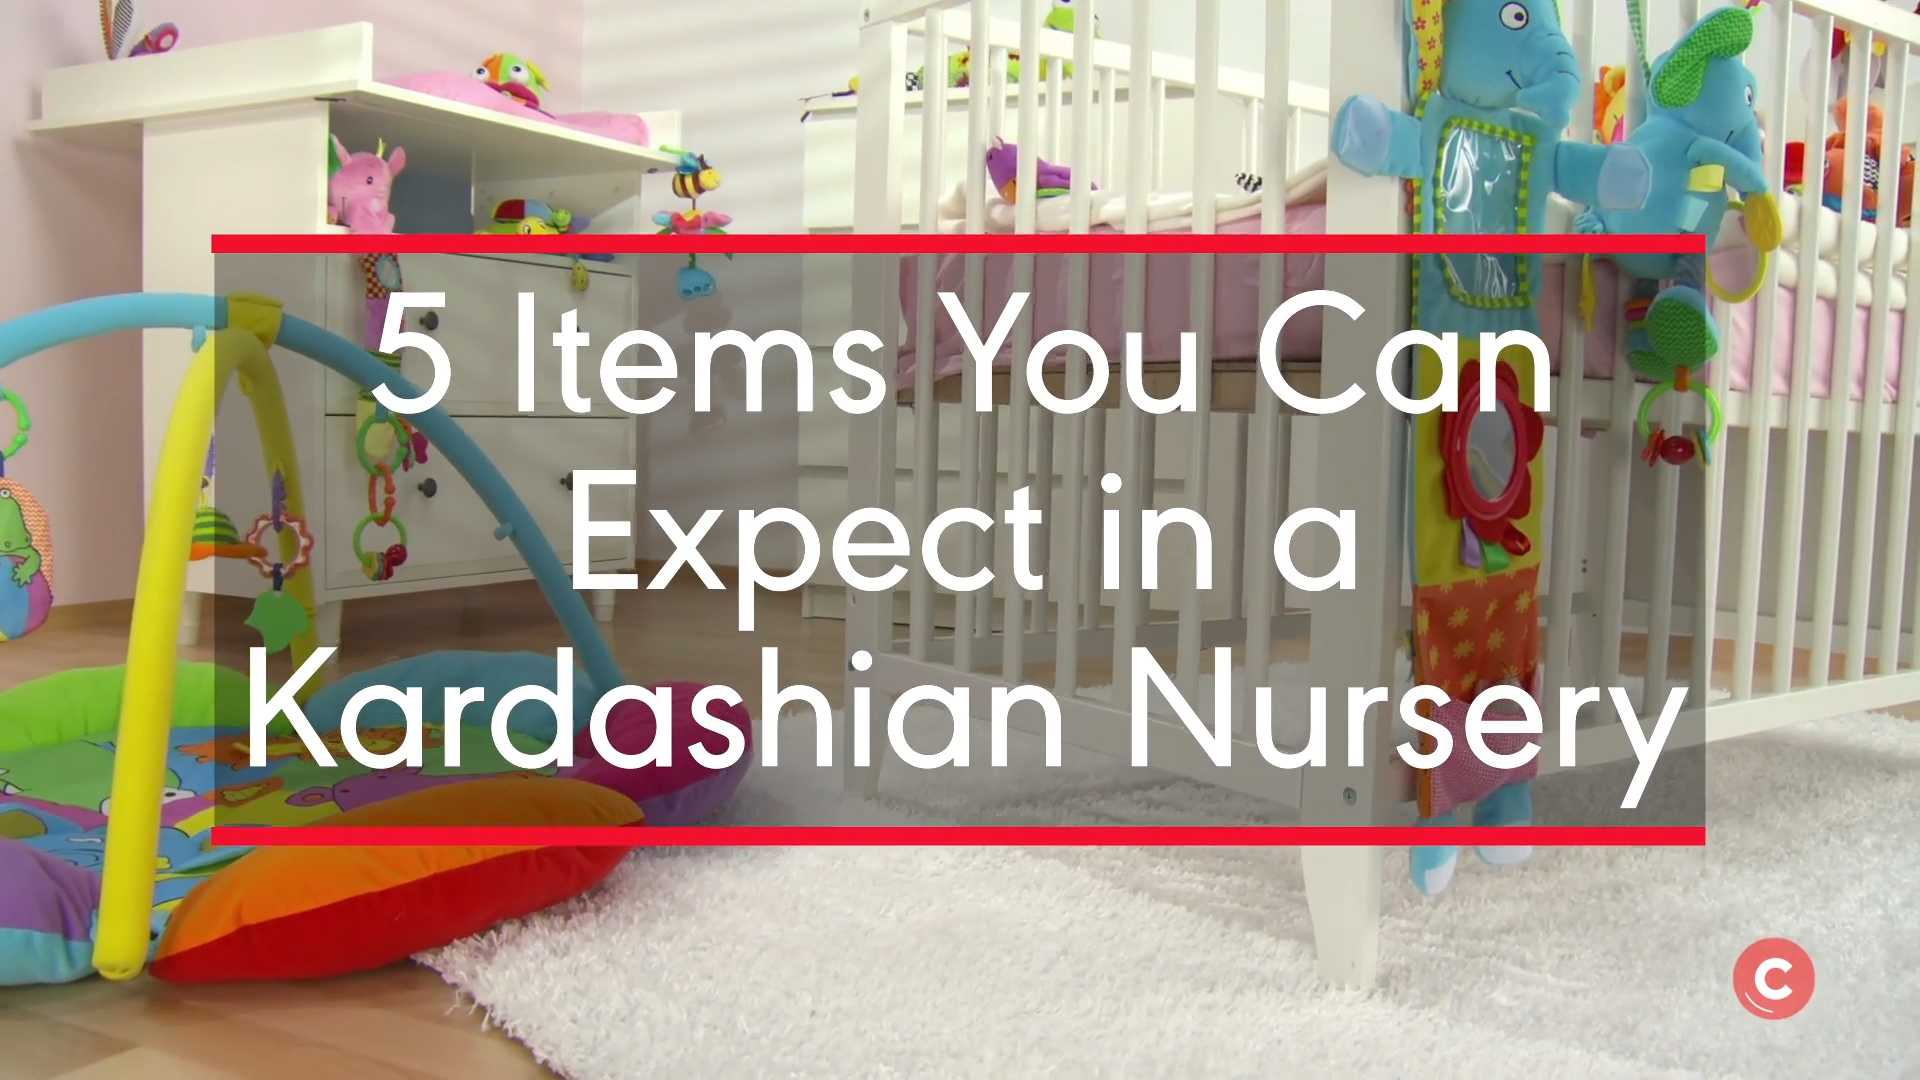 5%20Items%20You%20Can%20Expect%20in%20a%20Kardashian%20Nursery_STILL_0.jpg